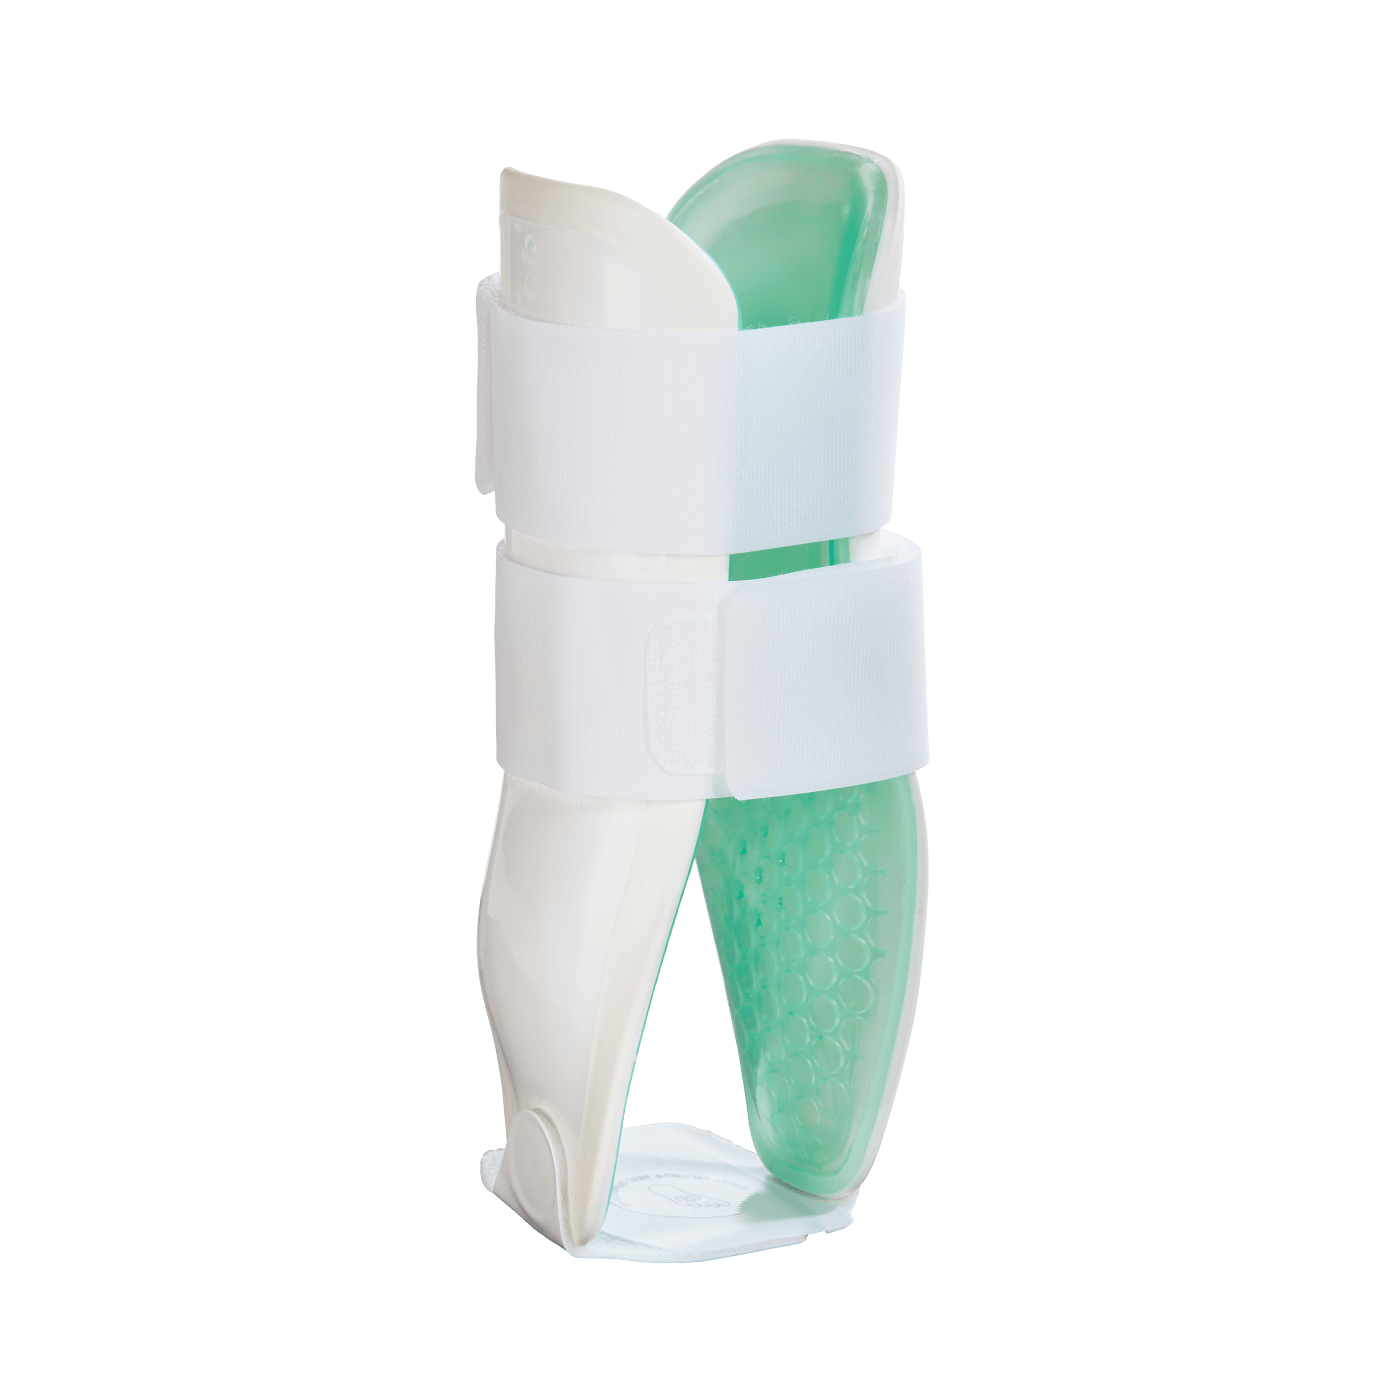 Ossur AirForm Pre-inflated Ankle Stirrup